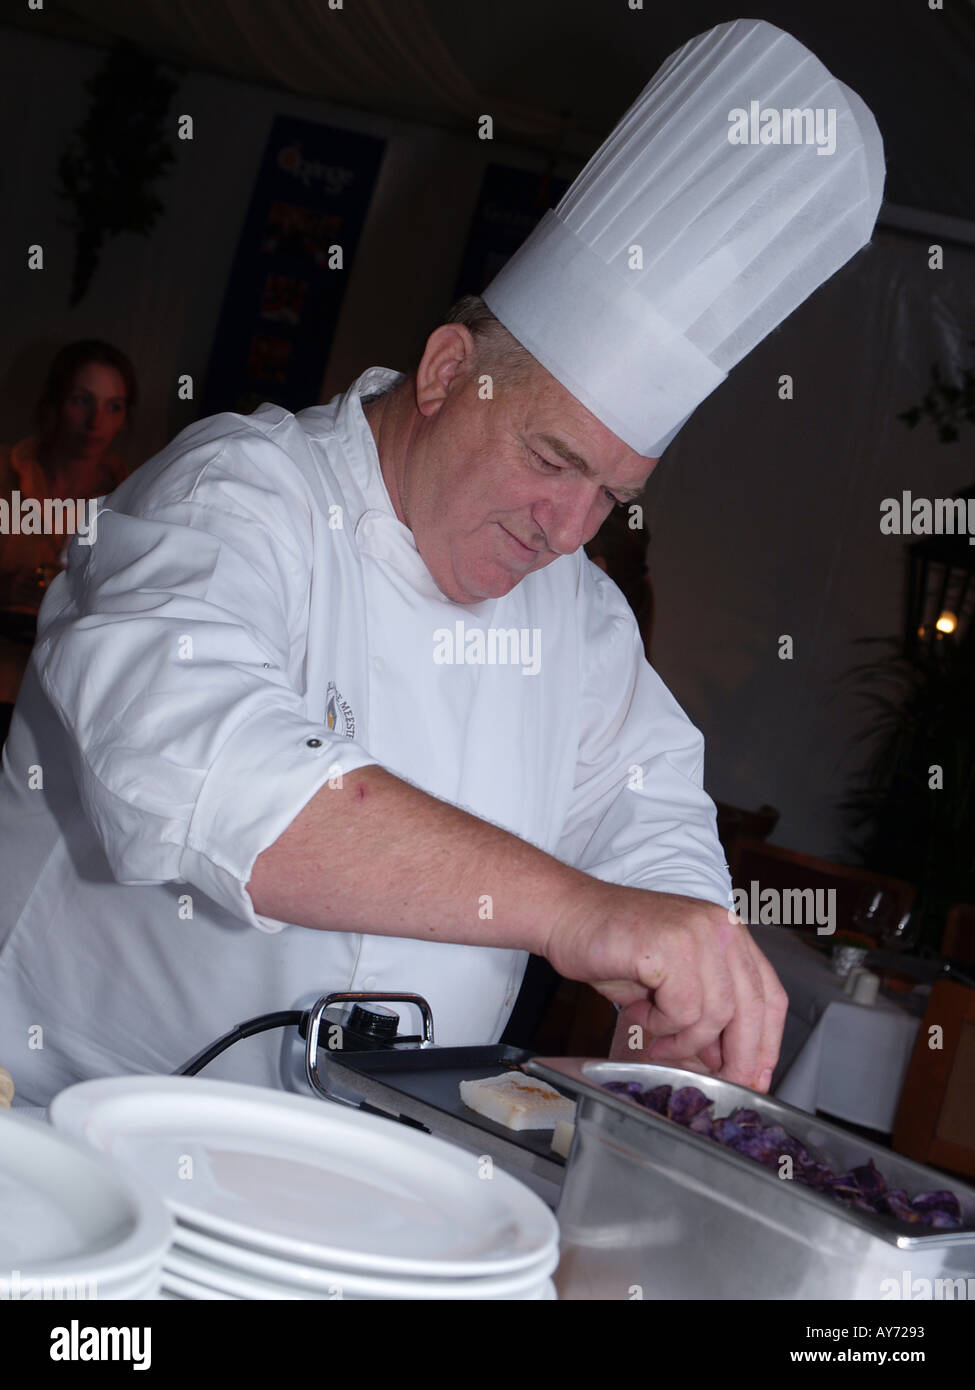 Famous Dutch TV chef Cas Spijkers at work - Stock Image